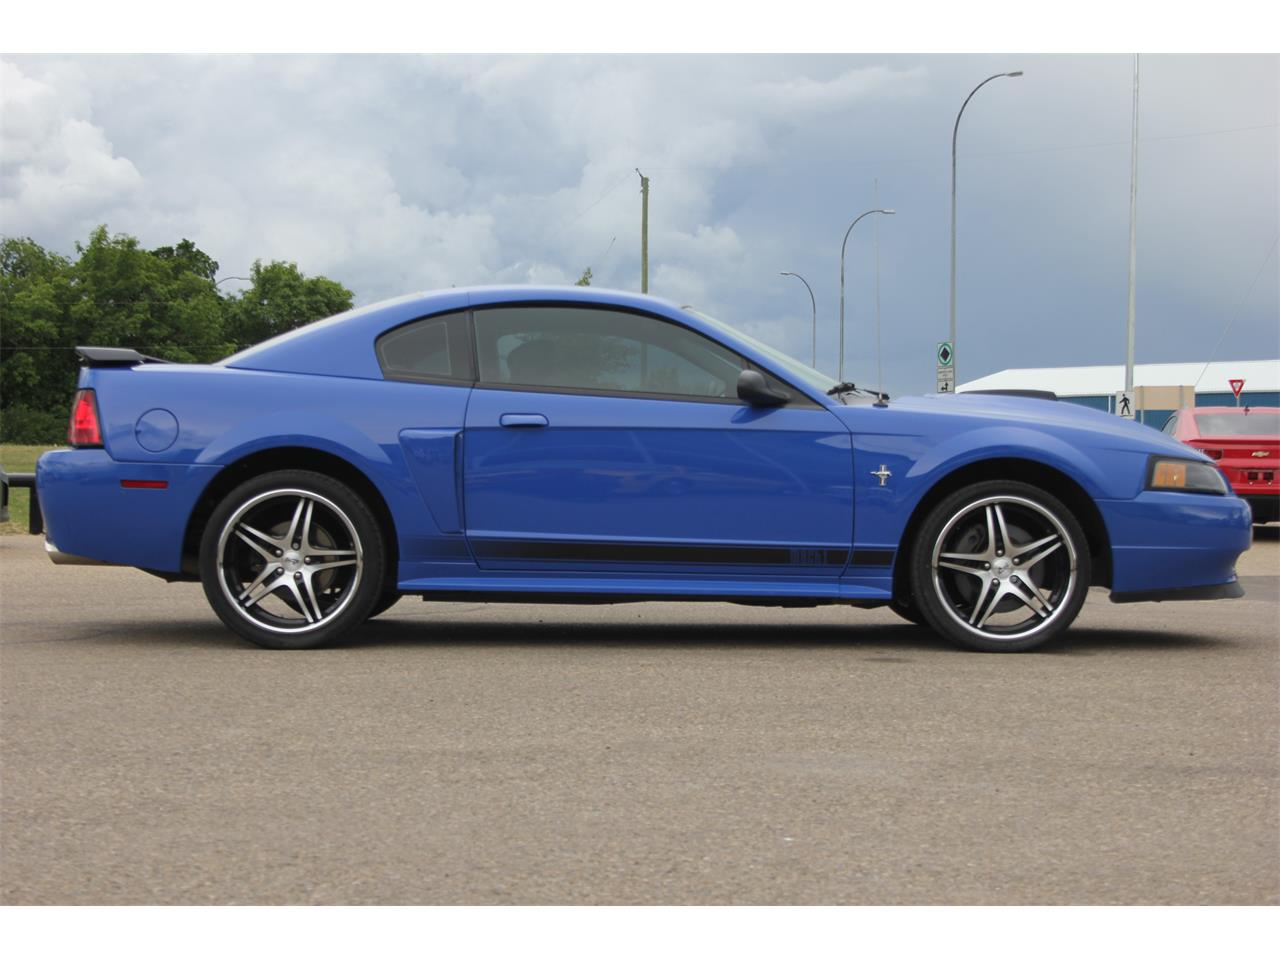 Large Picture of '03 Ford Mustang Mach 1 - $19,900.00 - LAXP